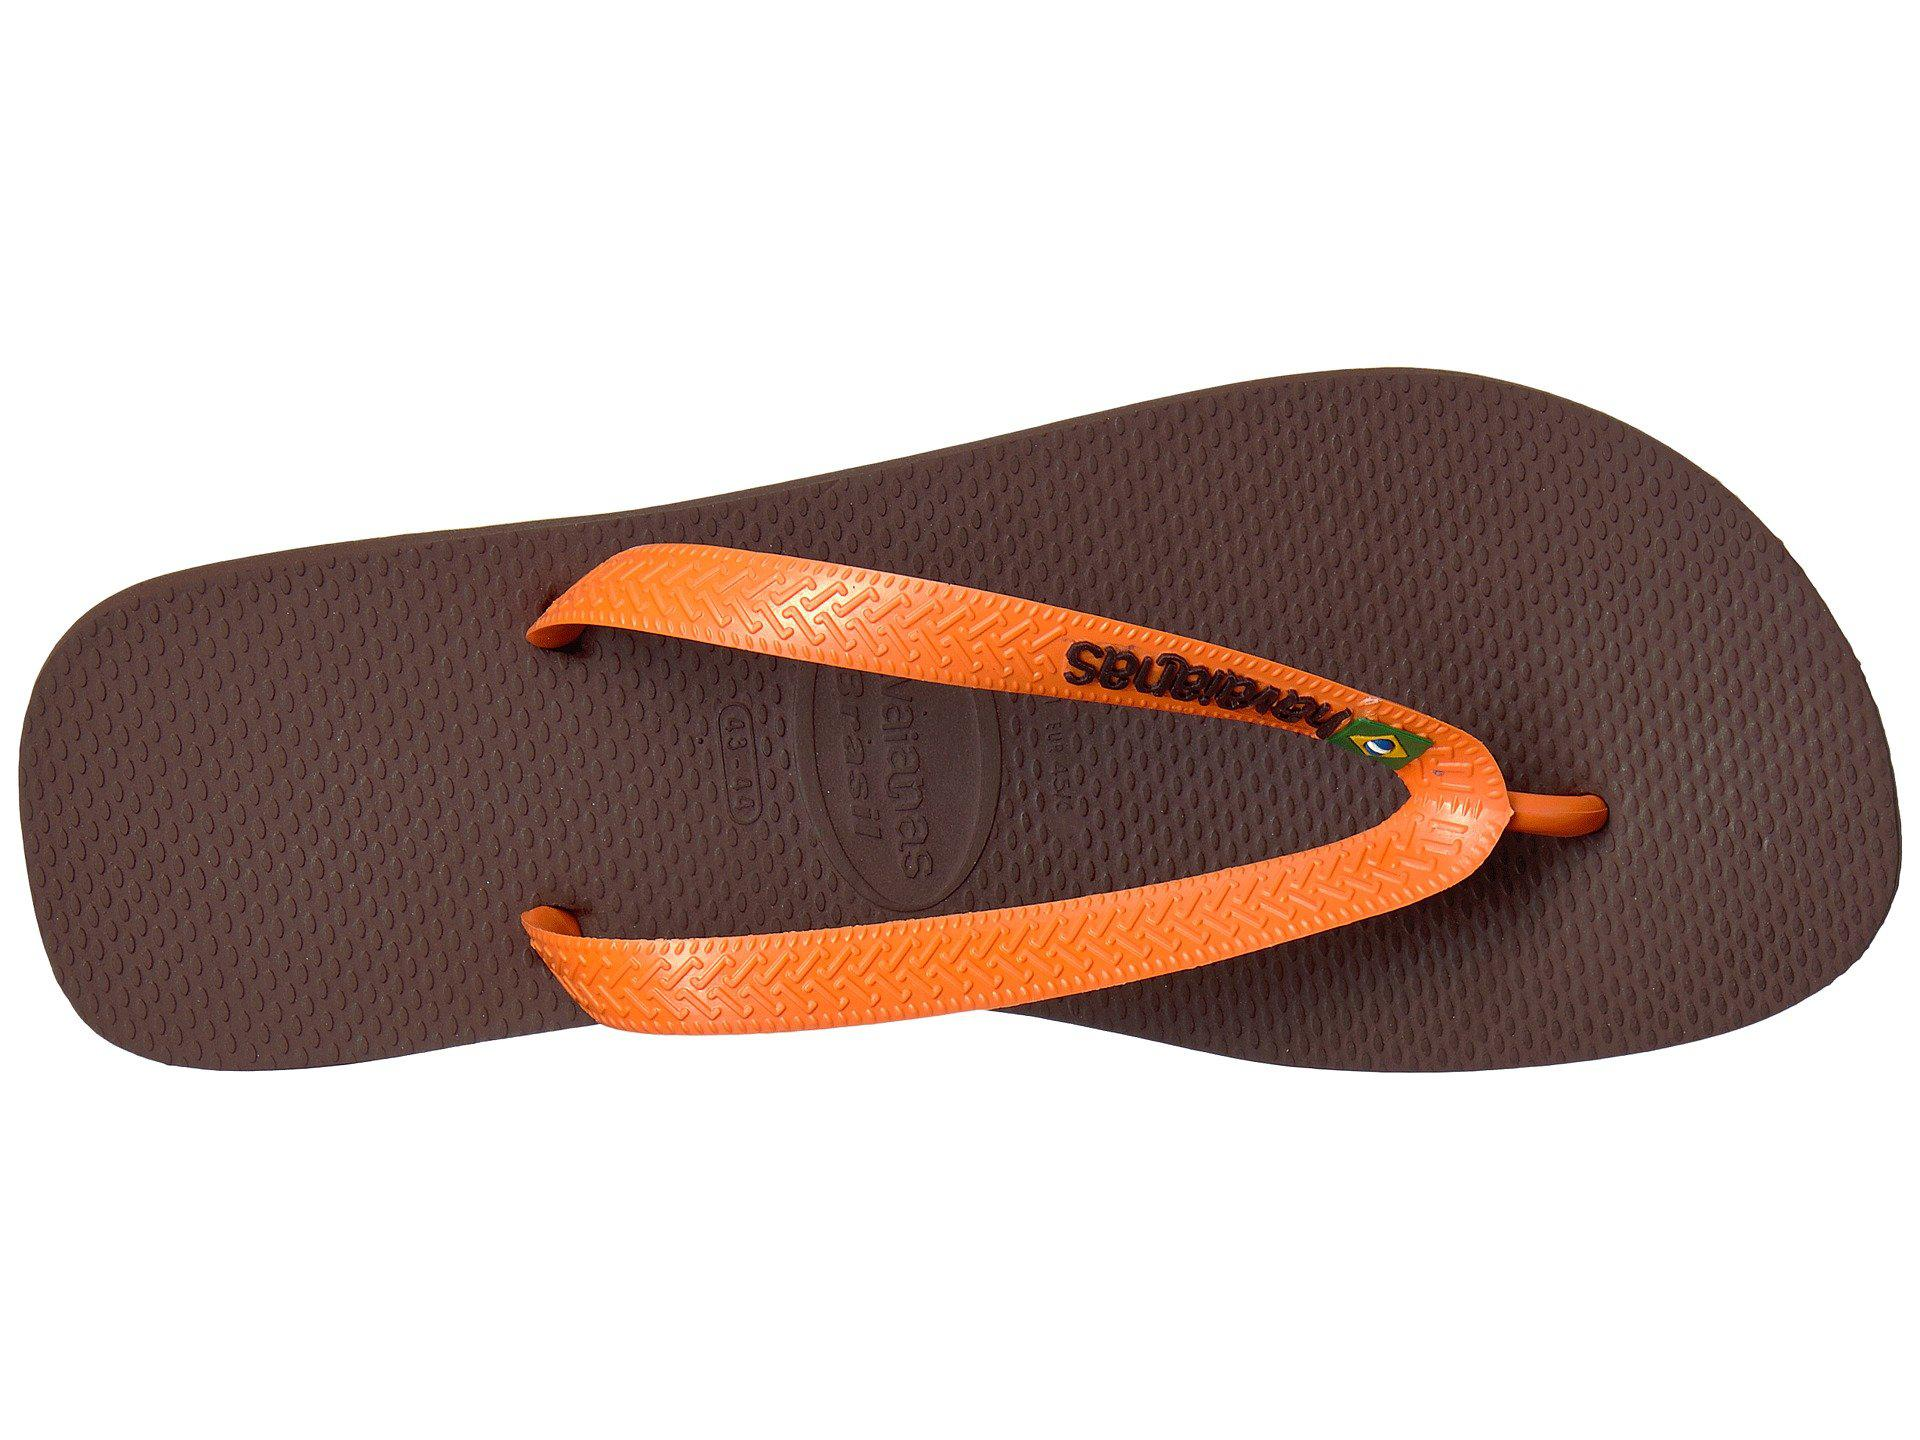 6dd60a394e Havaianas - Brown Brazil Logo Flip Flops (red) Men s Sandals for Men -  Lyst. View fullscreen